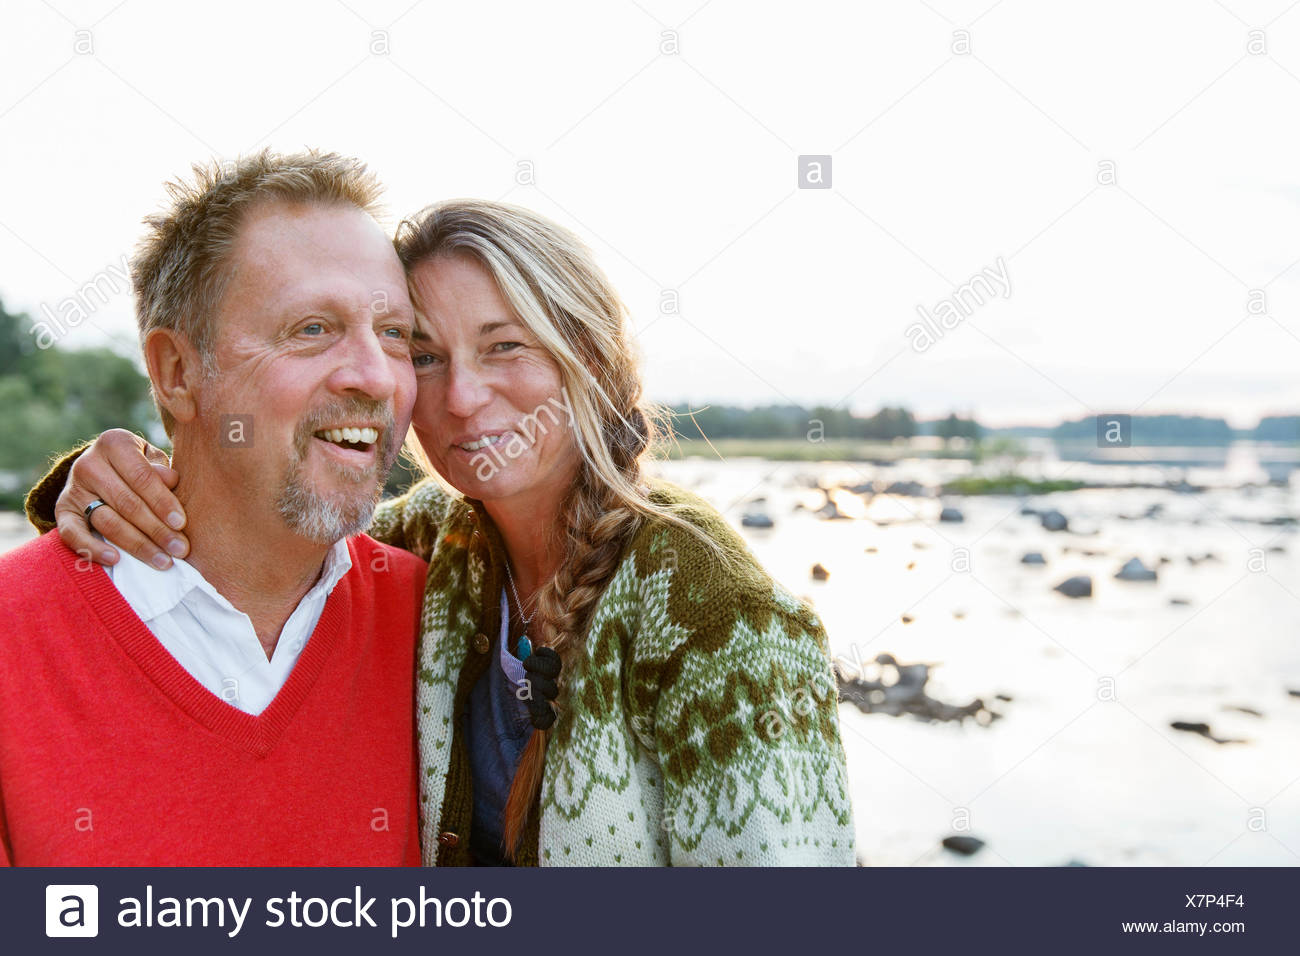 Sweden, Gastrikland, Dalalven, Man and woman by lake - Stock Image